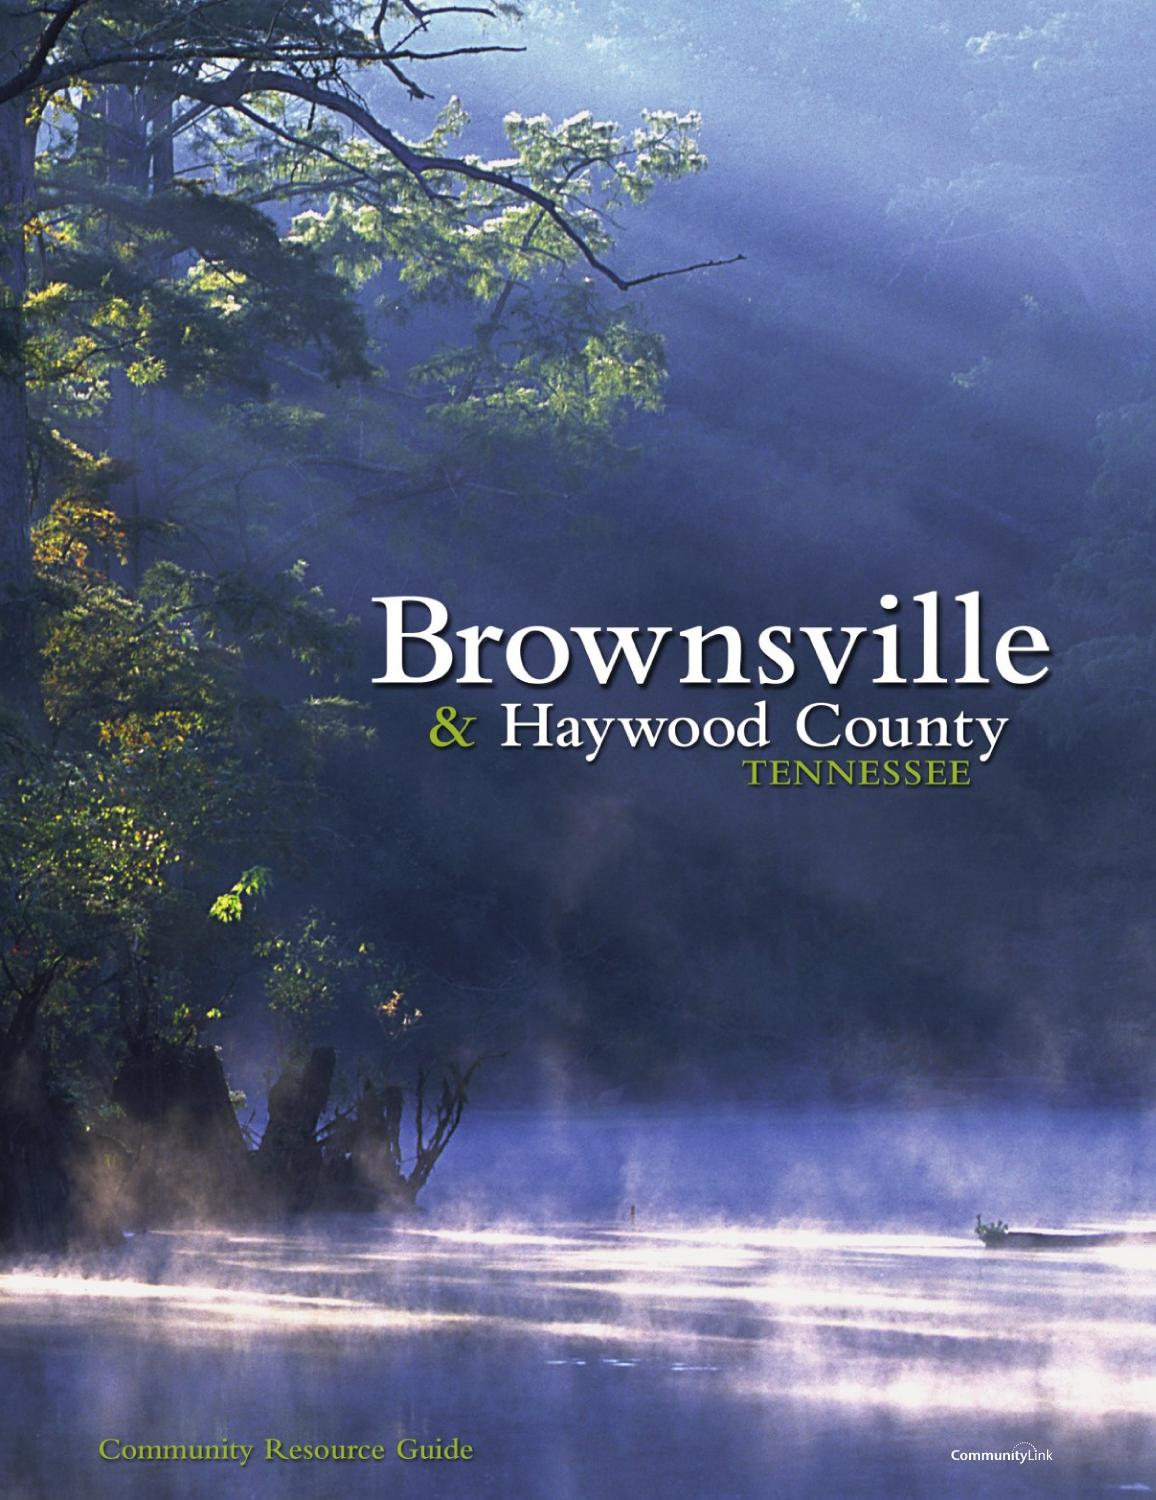 Tennessee haywood county stanton - Brownsville Haywood County Tn 2005 Community Resource Guide By Communitylink Issuu